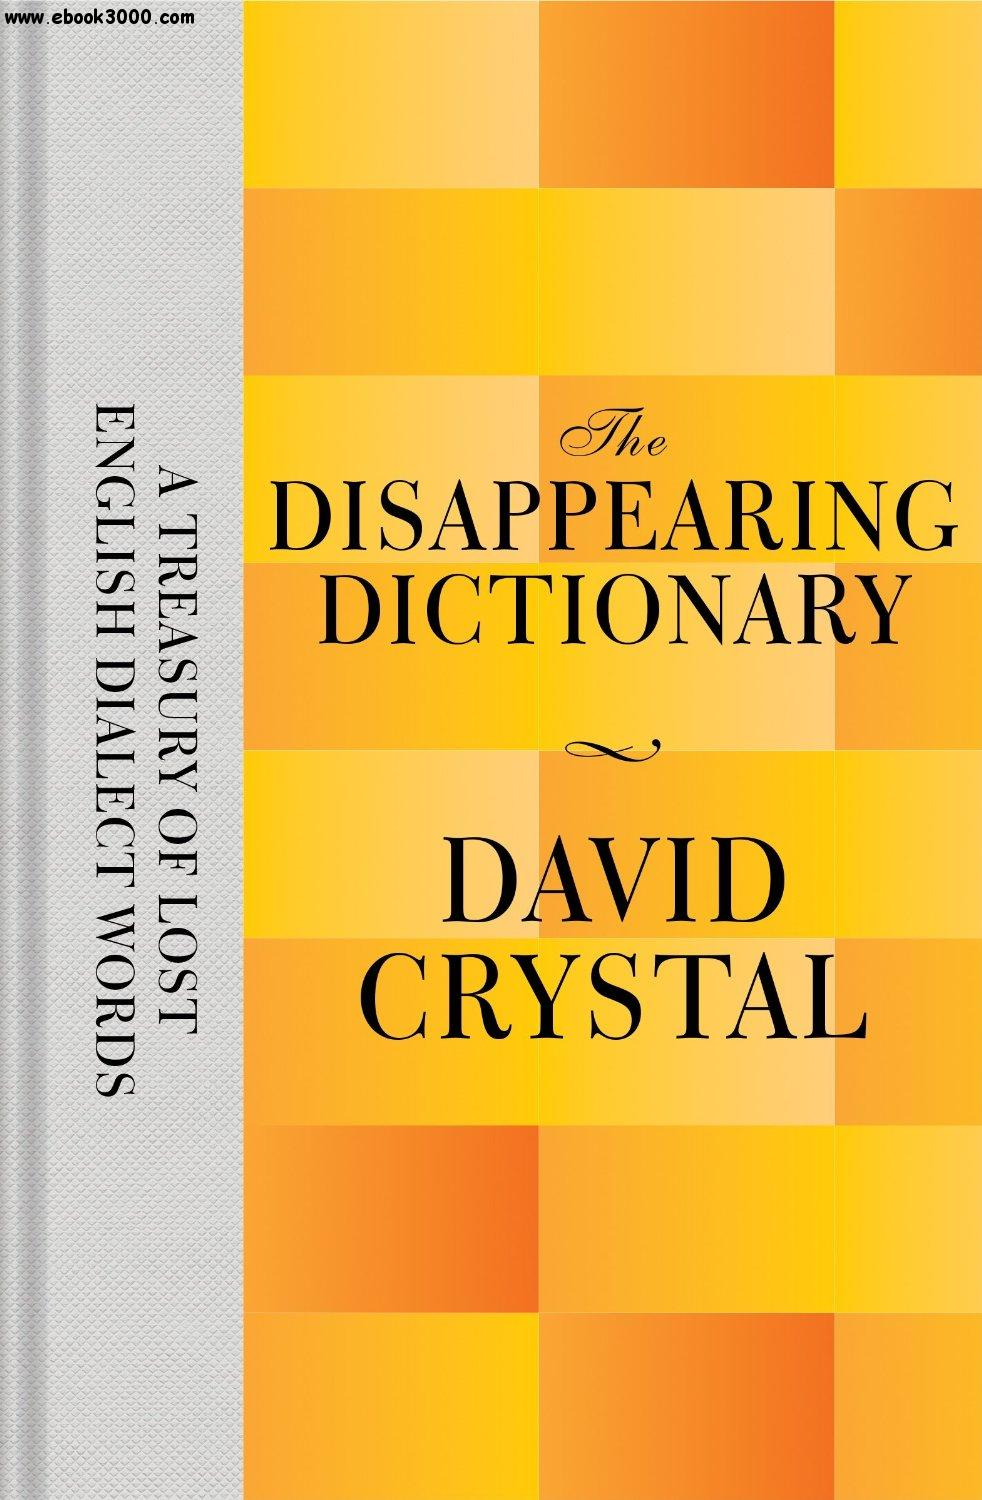 The Disappearing Dictionary: A Treasury of Lost English Dialect Words free download